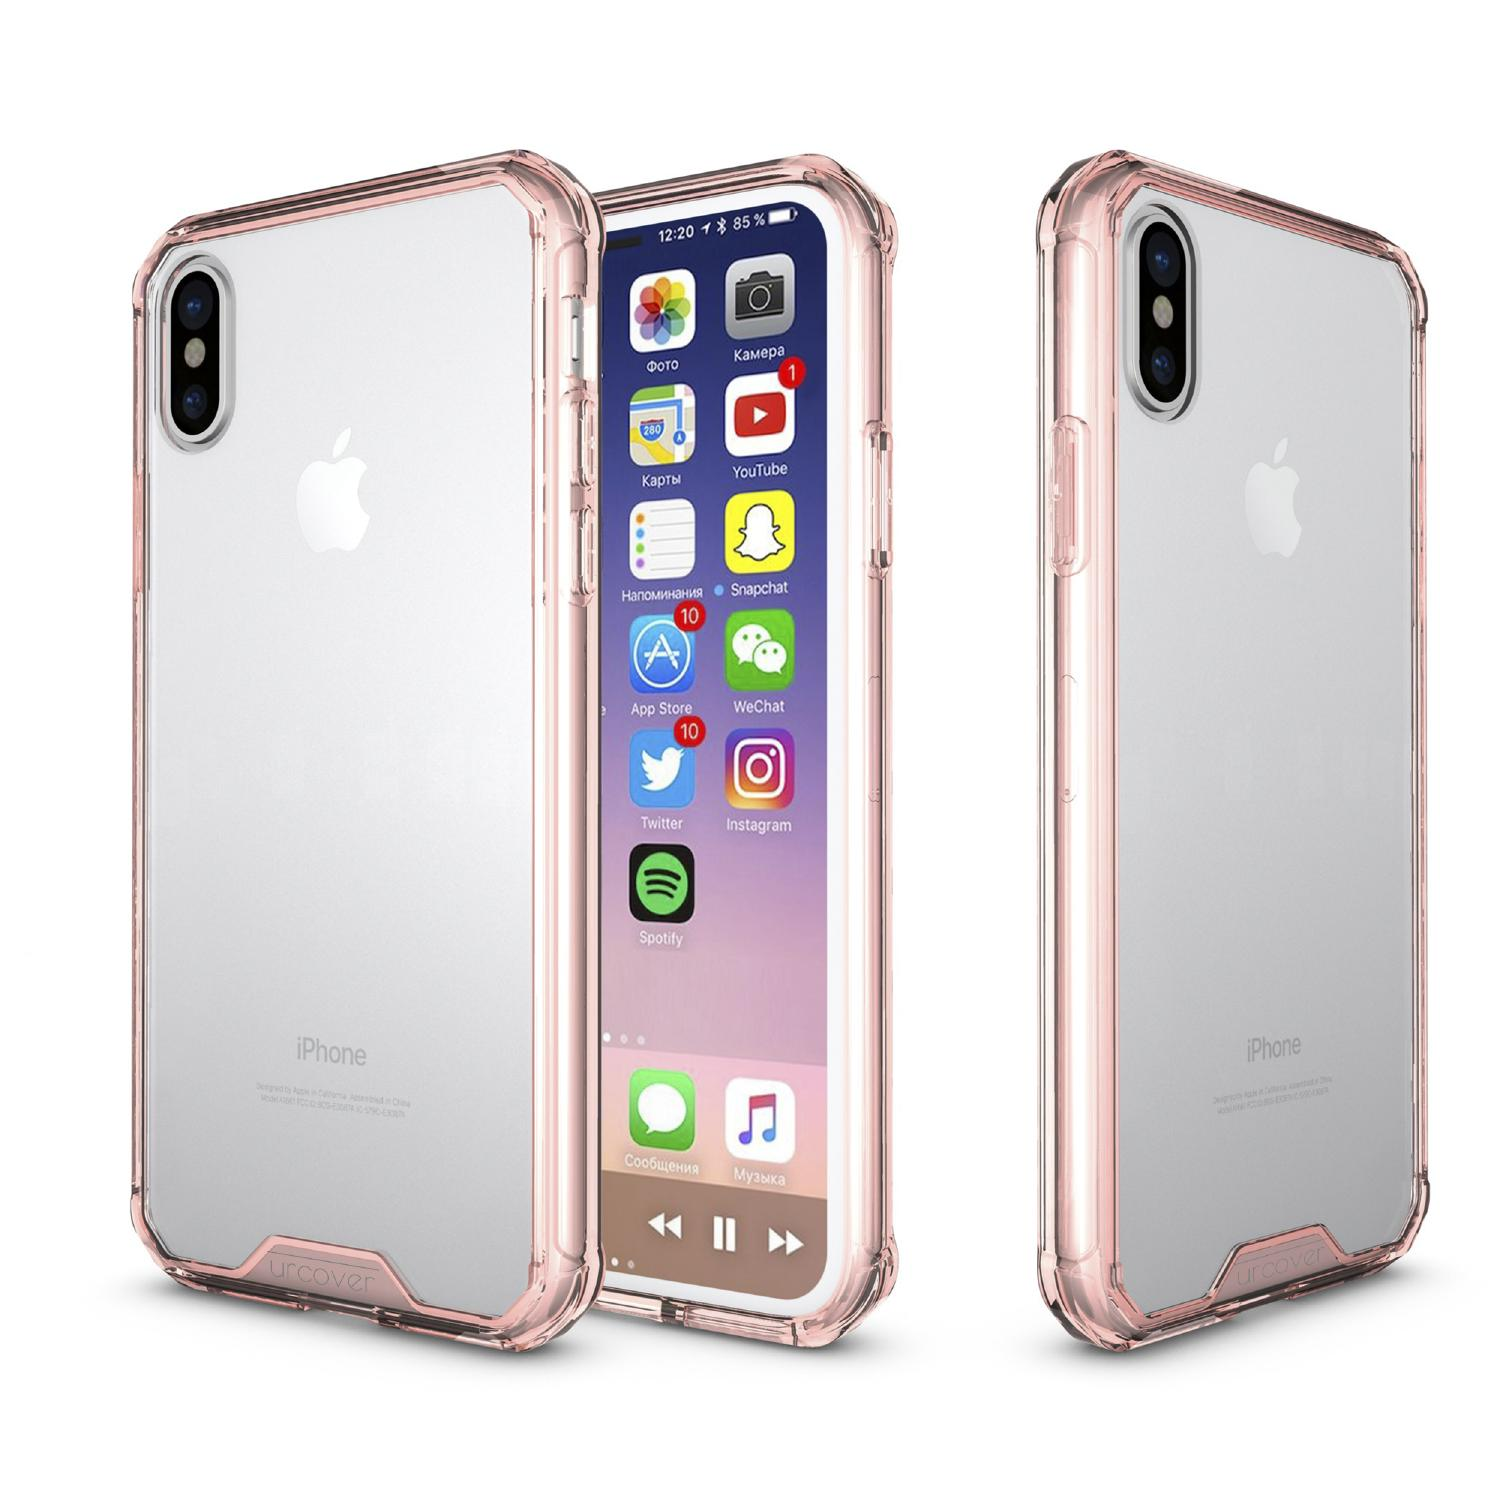 Urcover Apple iPhone X Handy Schutz Hülle ULTRA SLIM Case Cover klat transparent Schale Silikon Backcase iPhone X Xs iPhone Apple